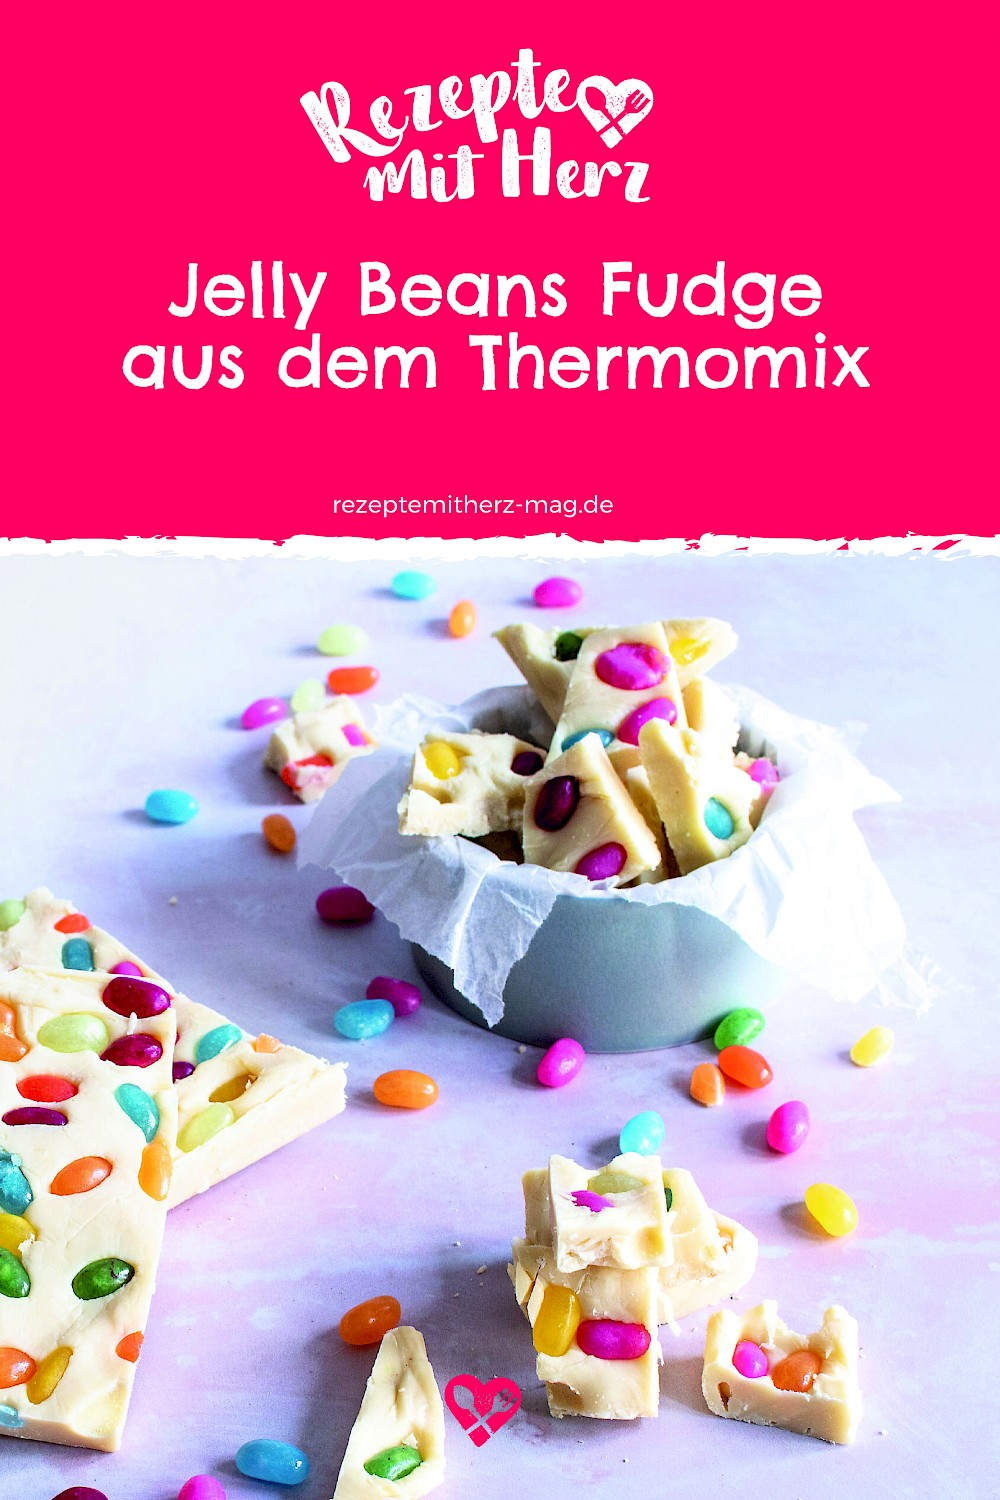 Jelly Beans Fudge aus dem Thermomix